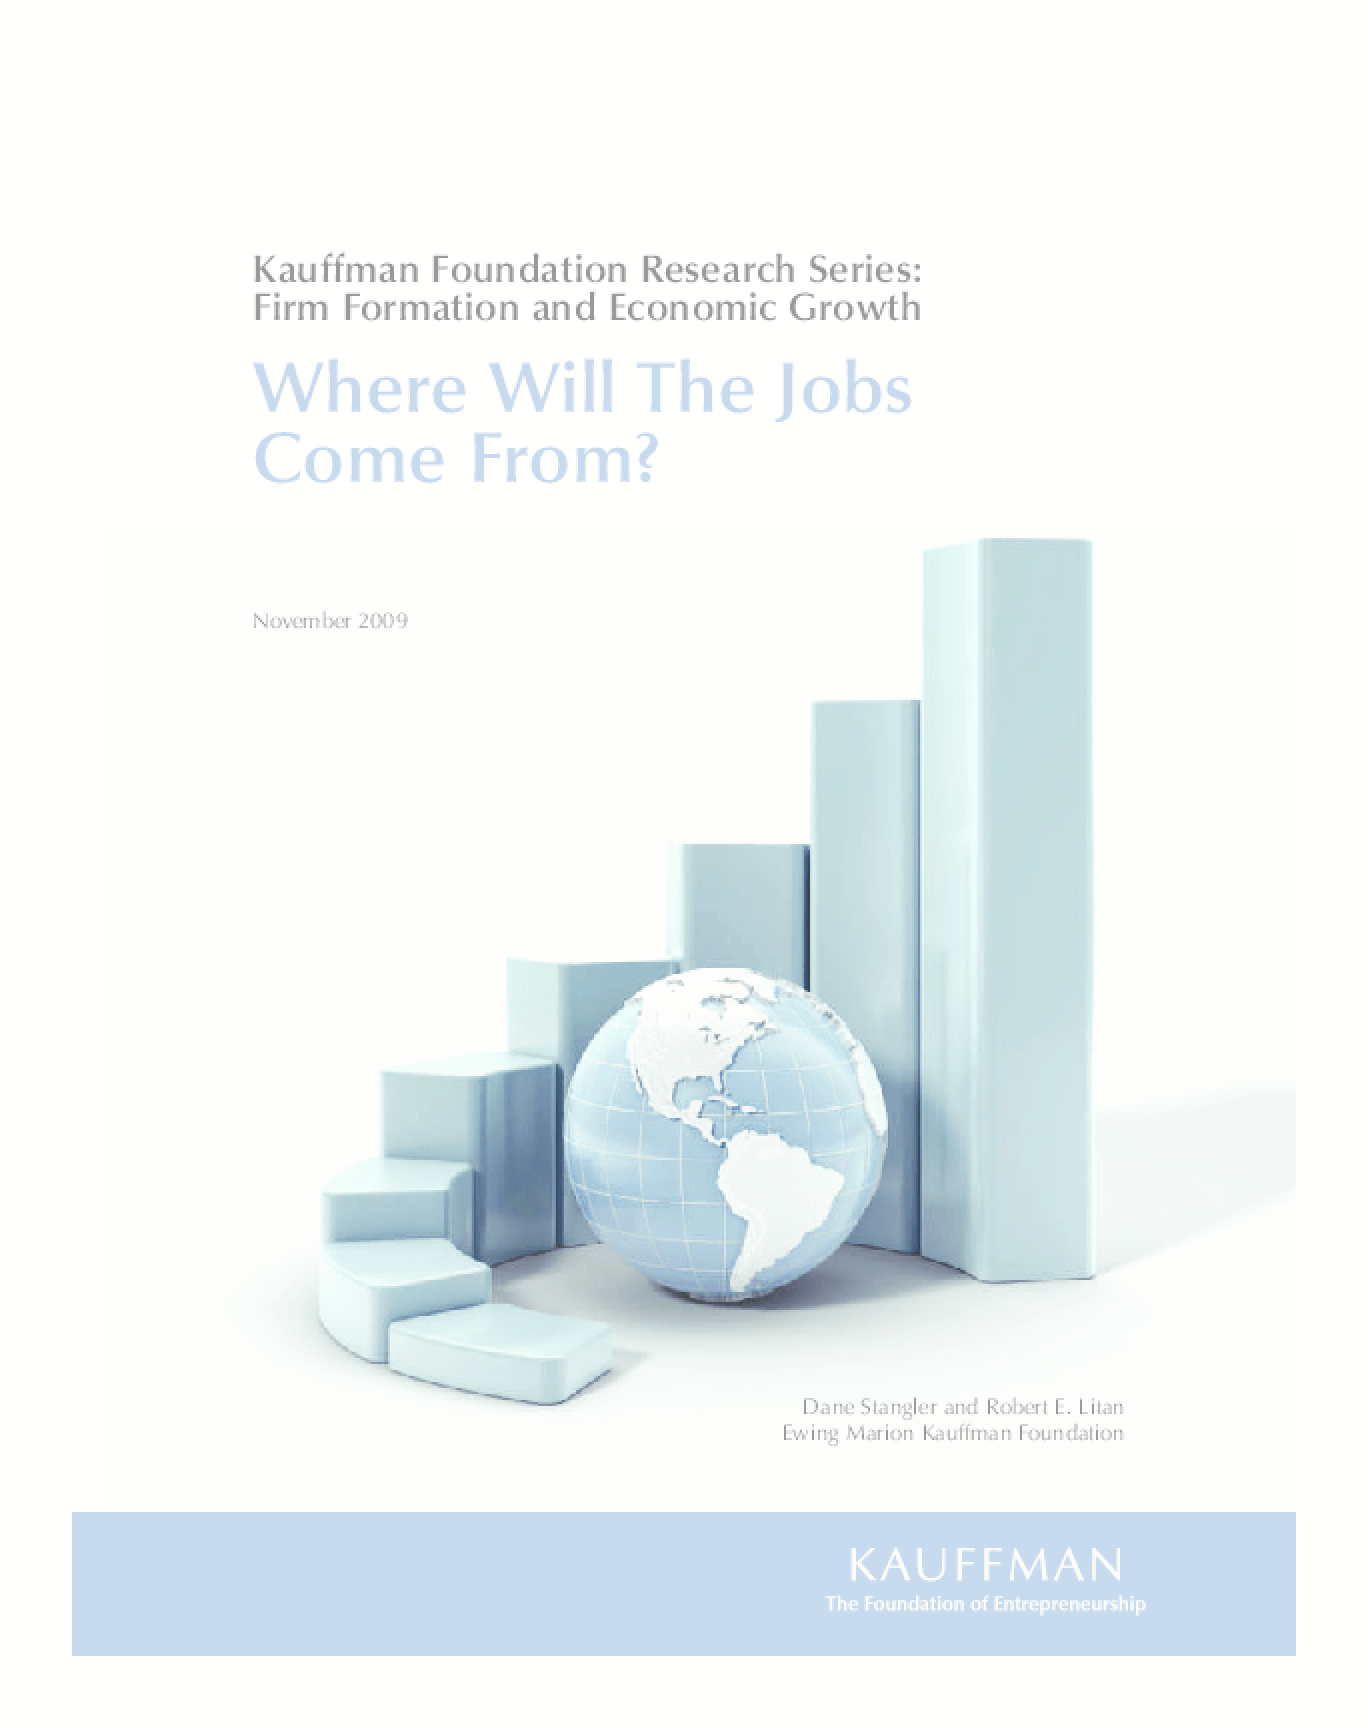 Where Will the Jobs Come From?